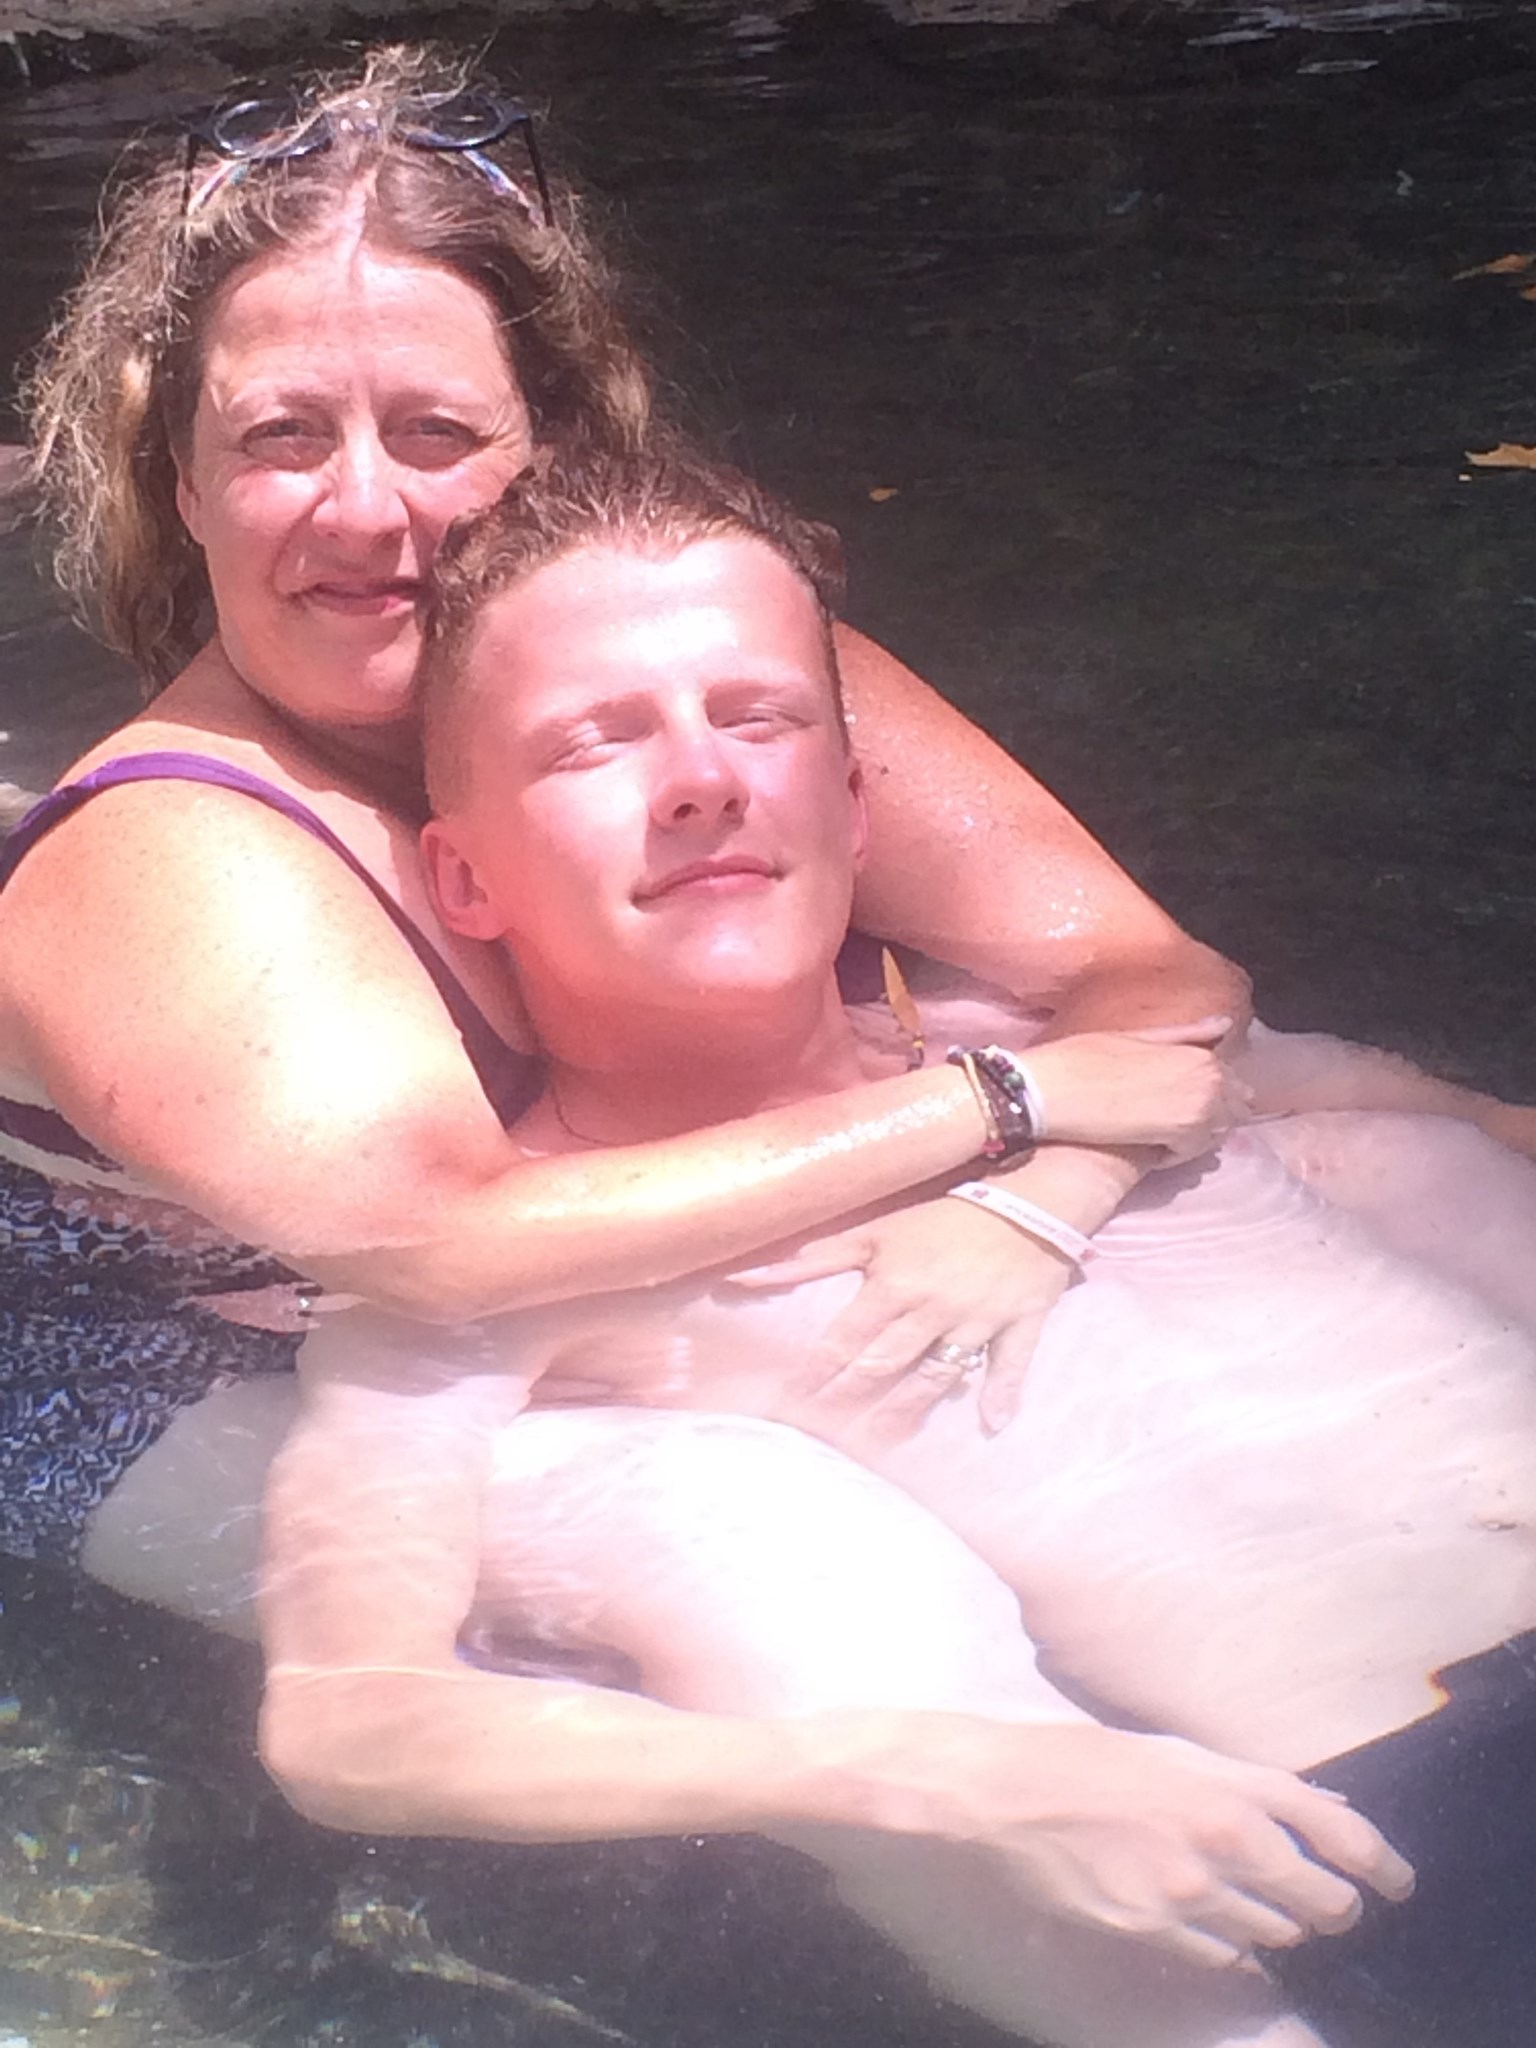 In hot springs love this photo x